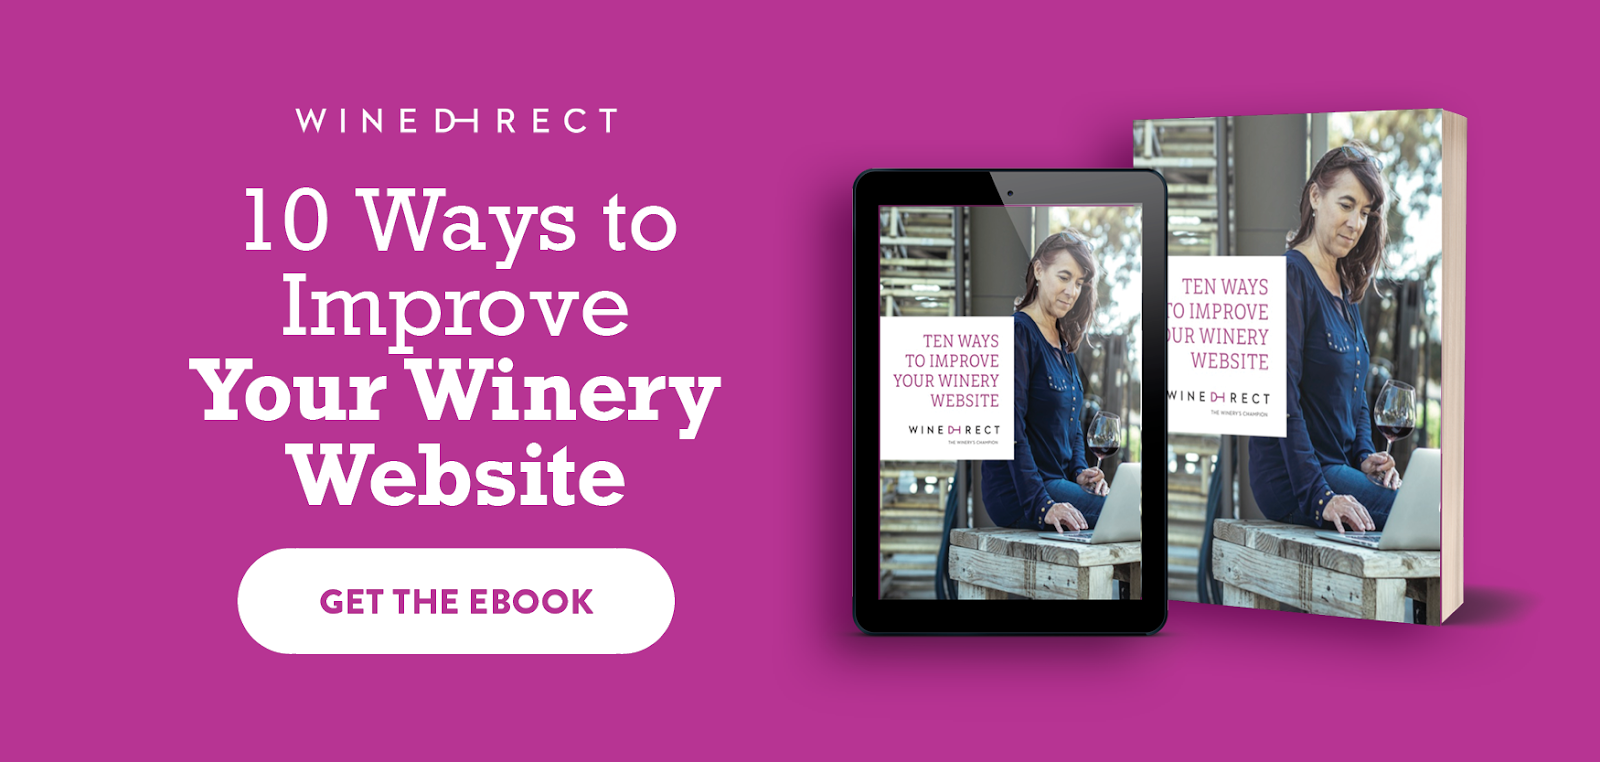 wine_direct_ad_example